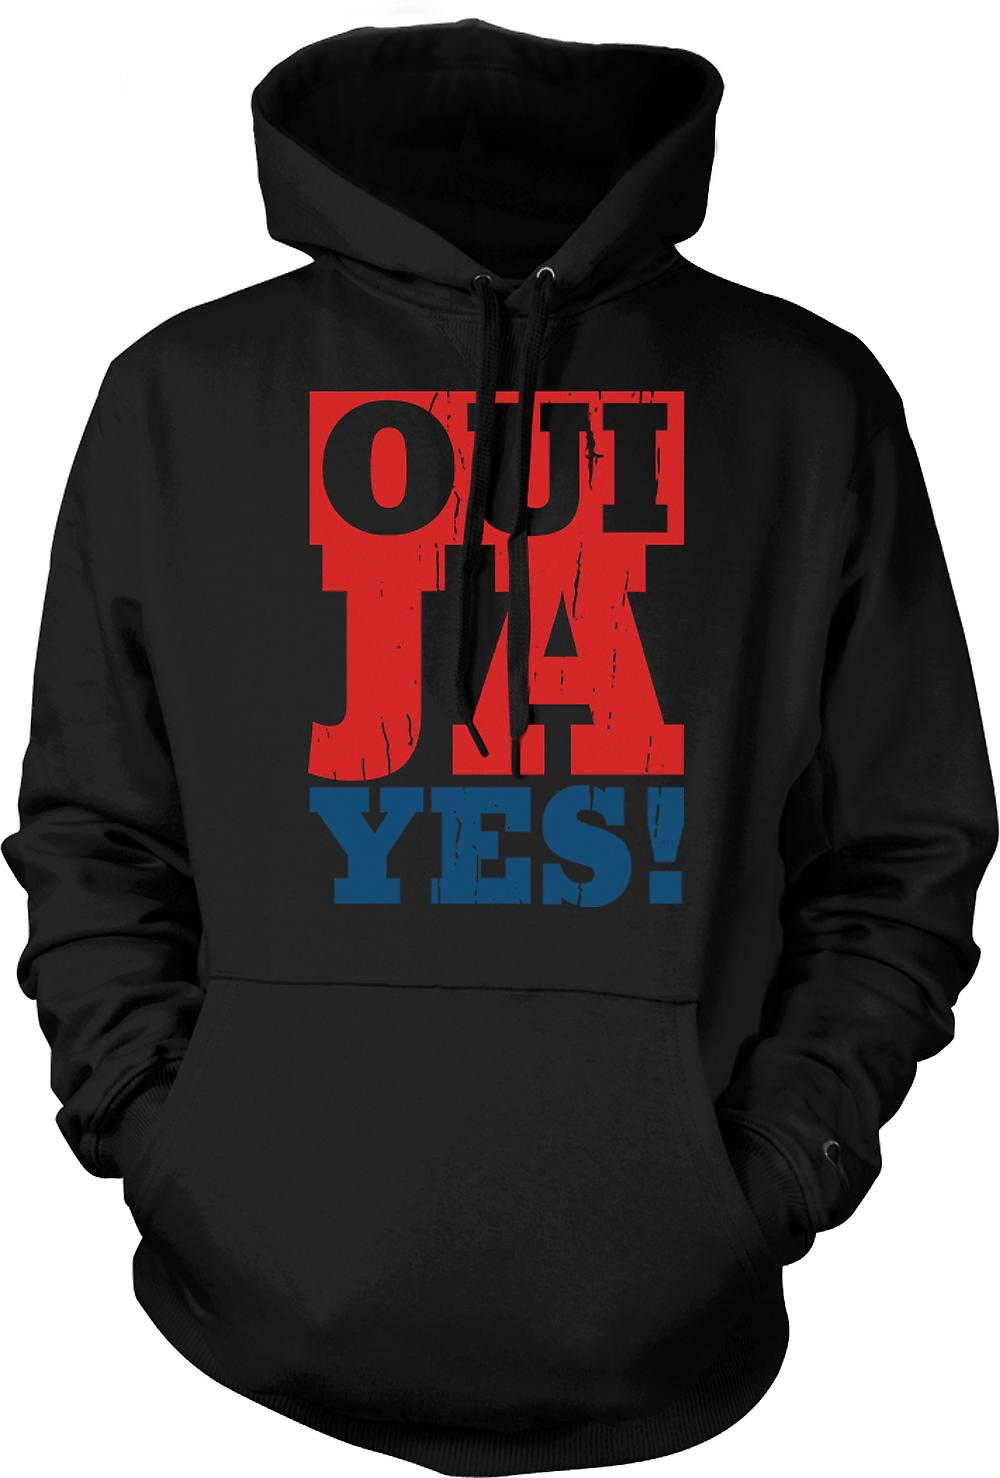 Mens Hoodie - Oui - Ya - Yes - Funny language